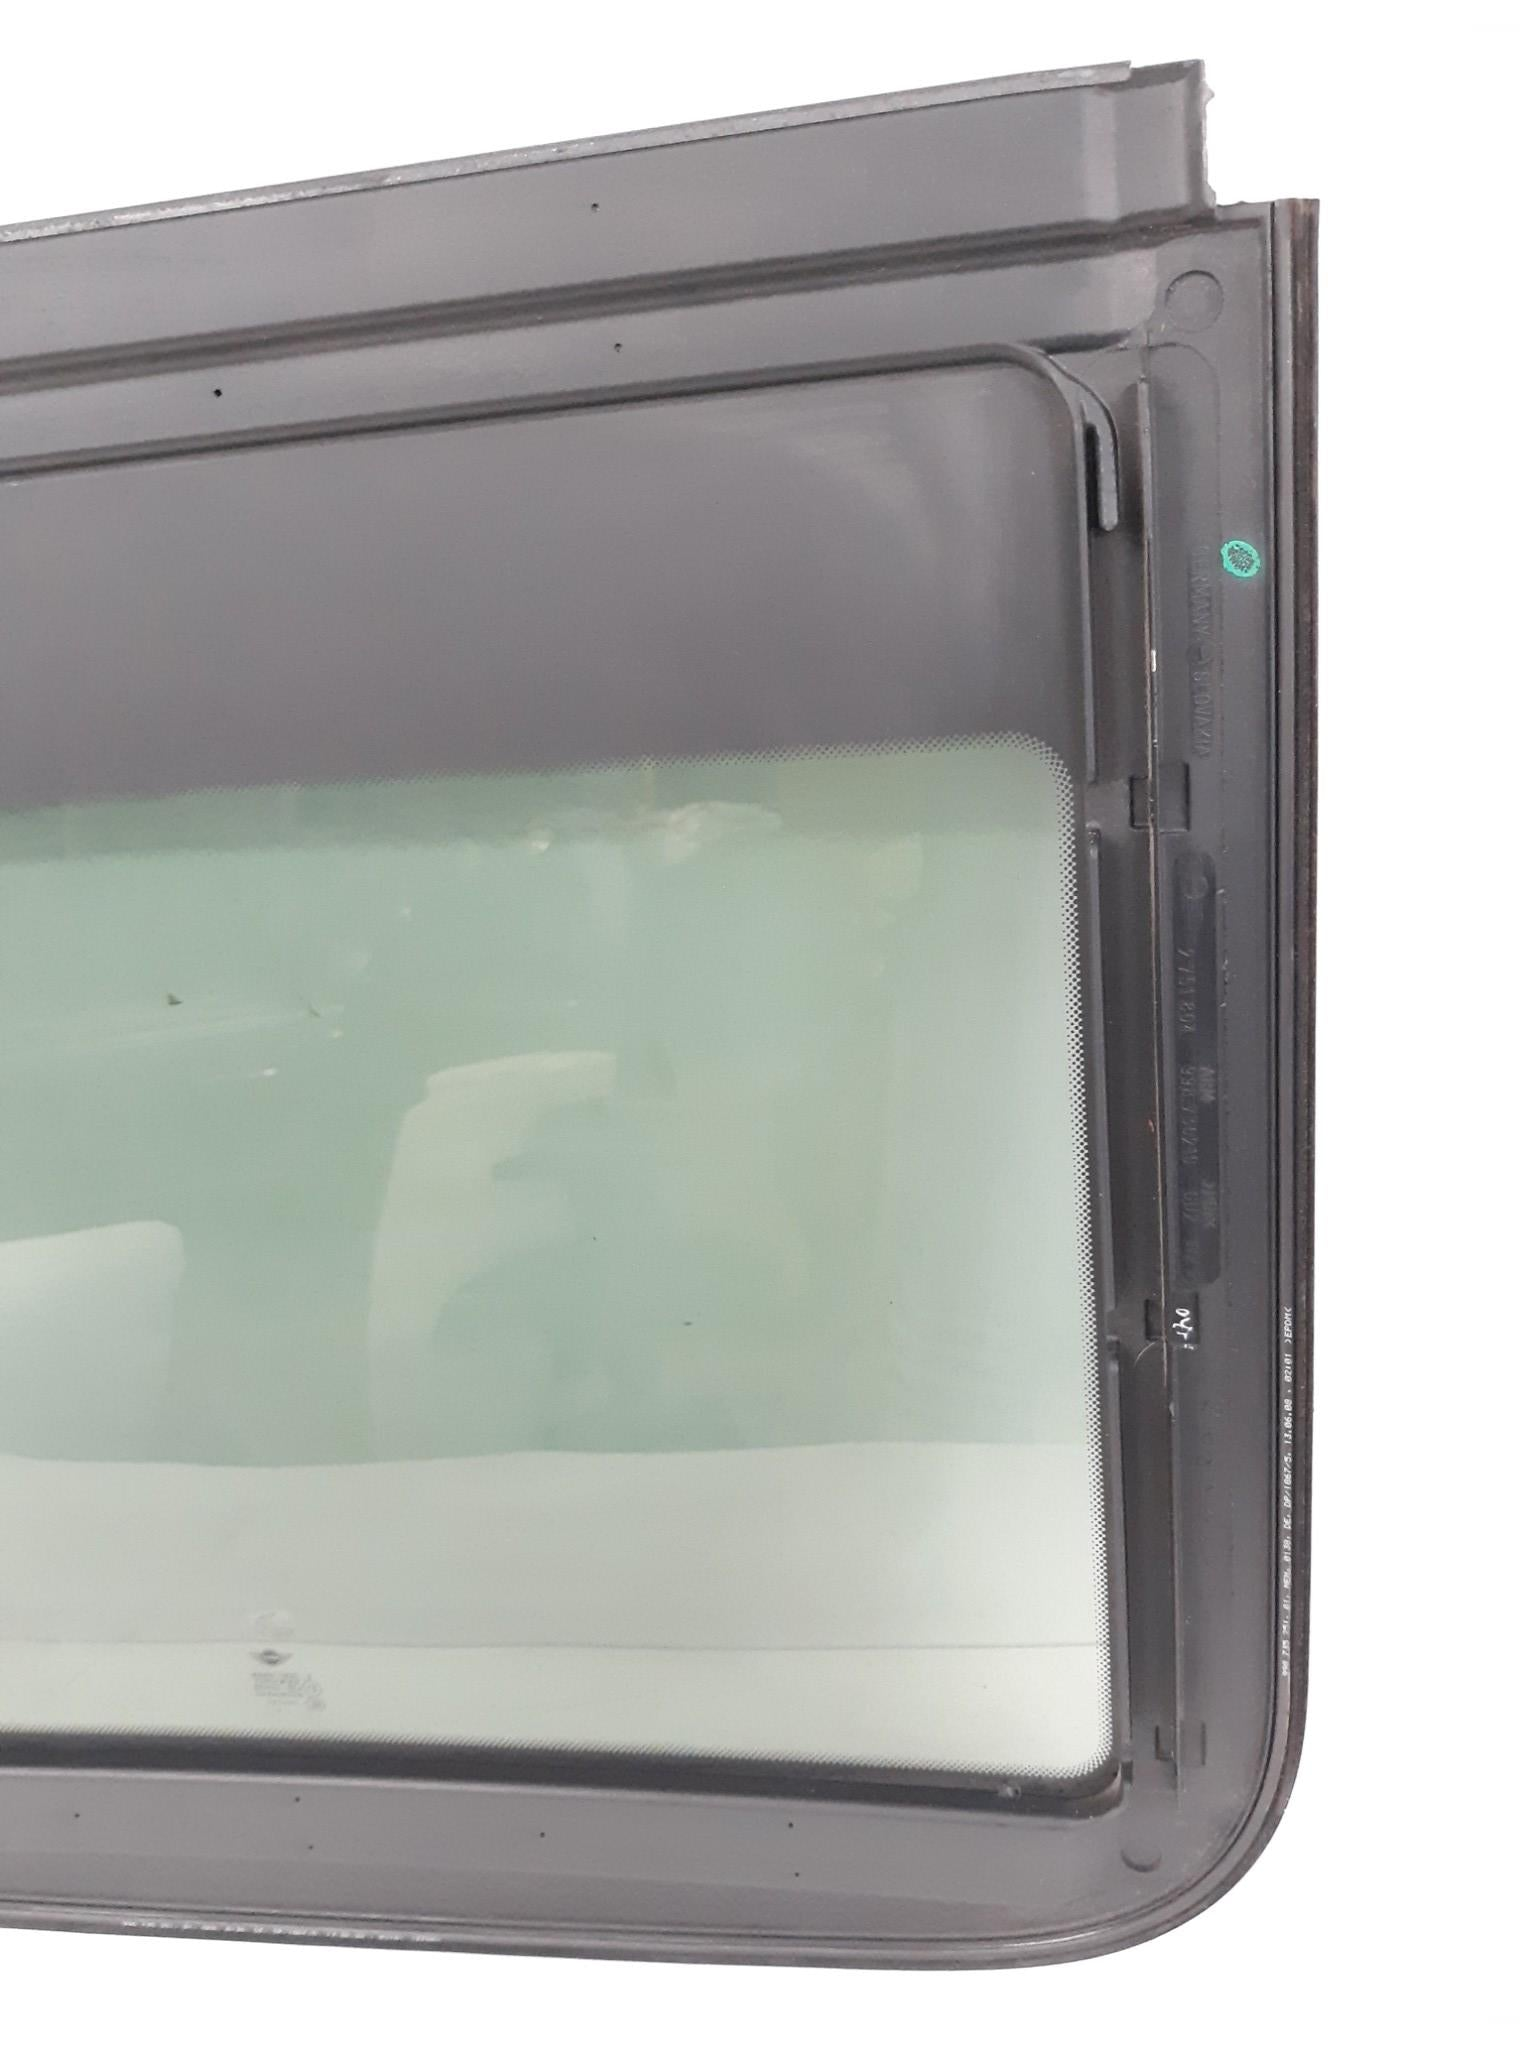 2007-2013 Mini Cooper R55 R56 LCI Rear Sunroof Glass 2751804 OEM